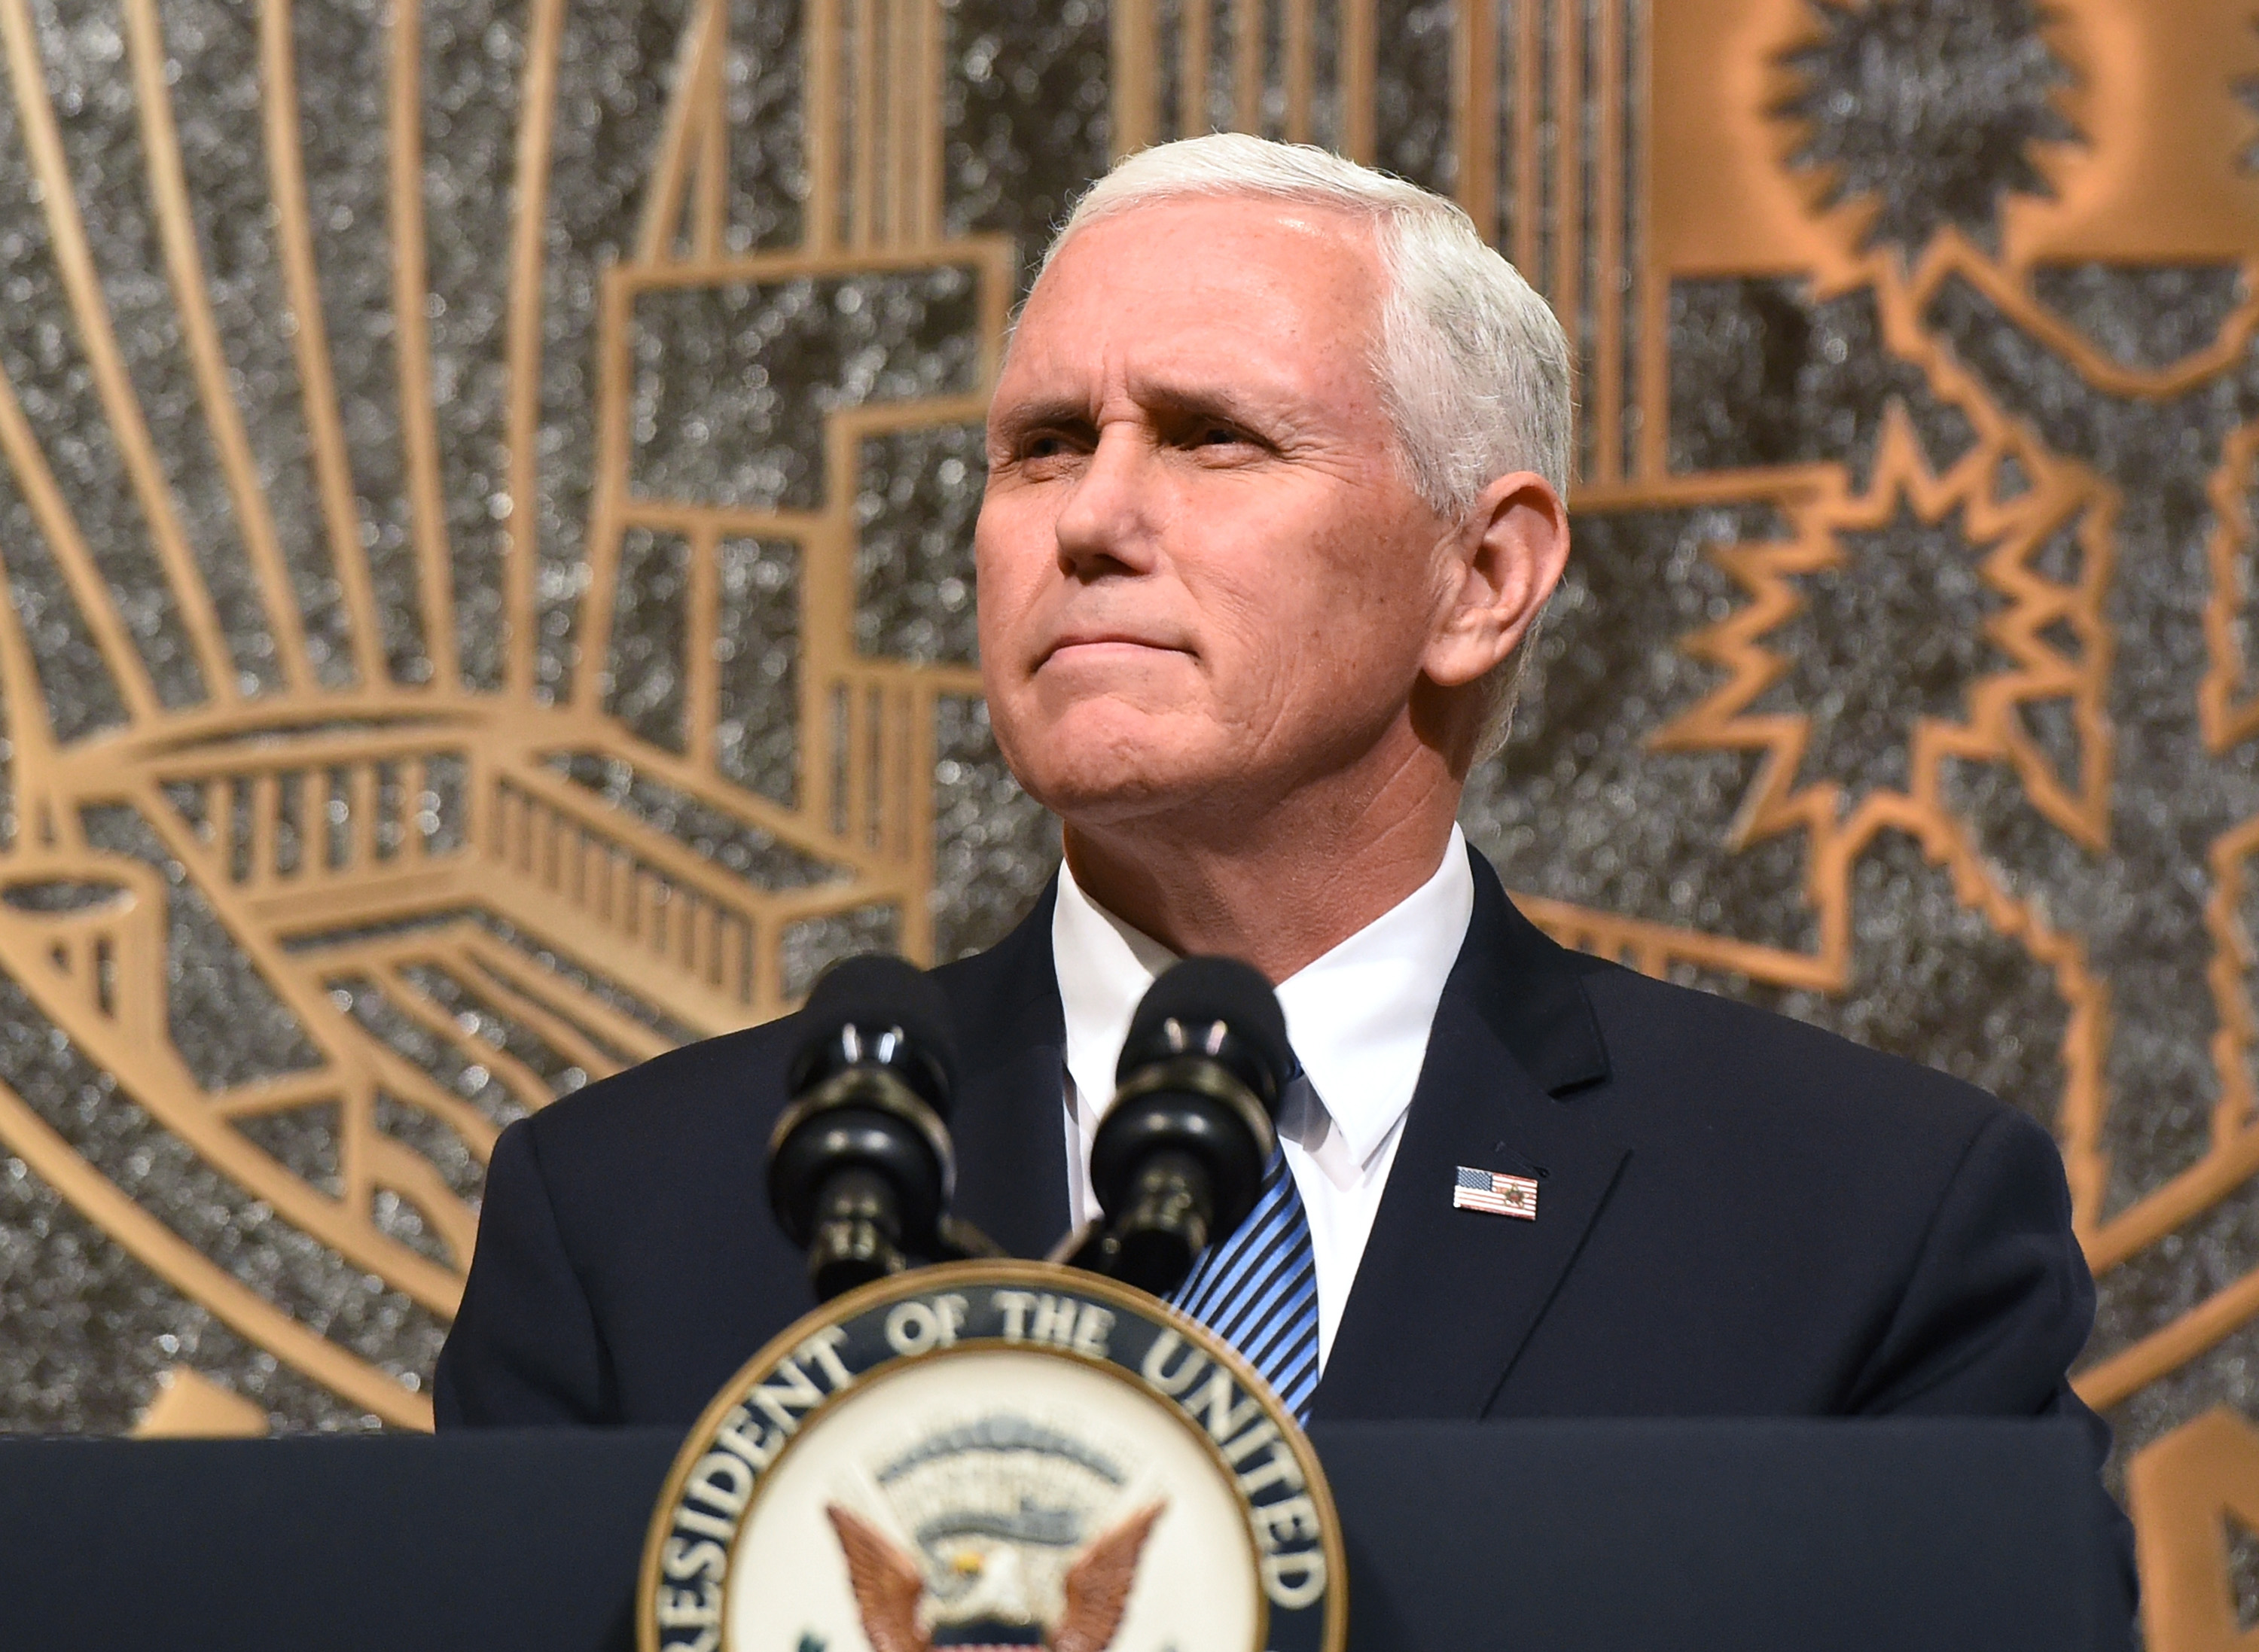 VP Pence Takes A Stand (And Walks Away), After NFL Players Kneel